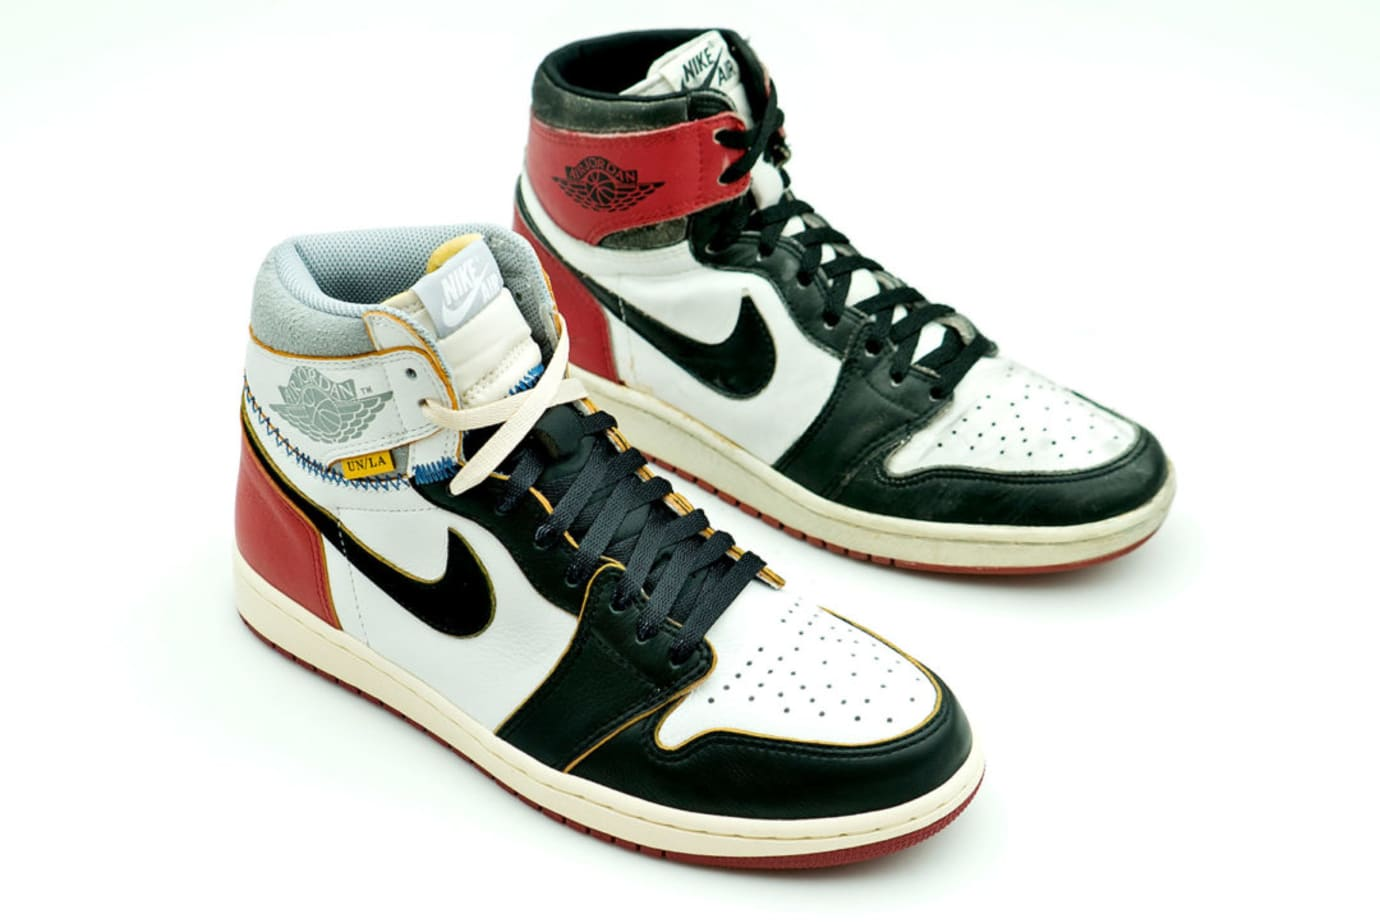 Union x Air Jordan 1 Comparison (vs. ''Black Toe' Lateral)